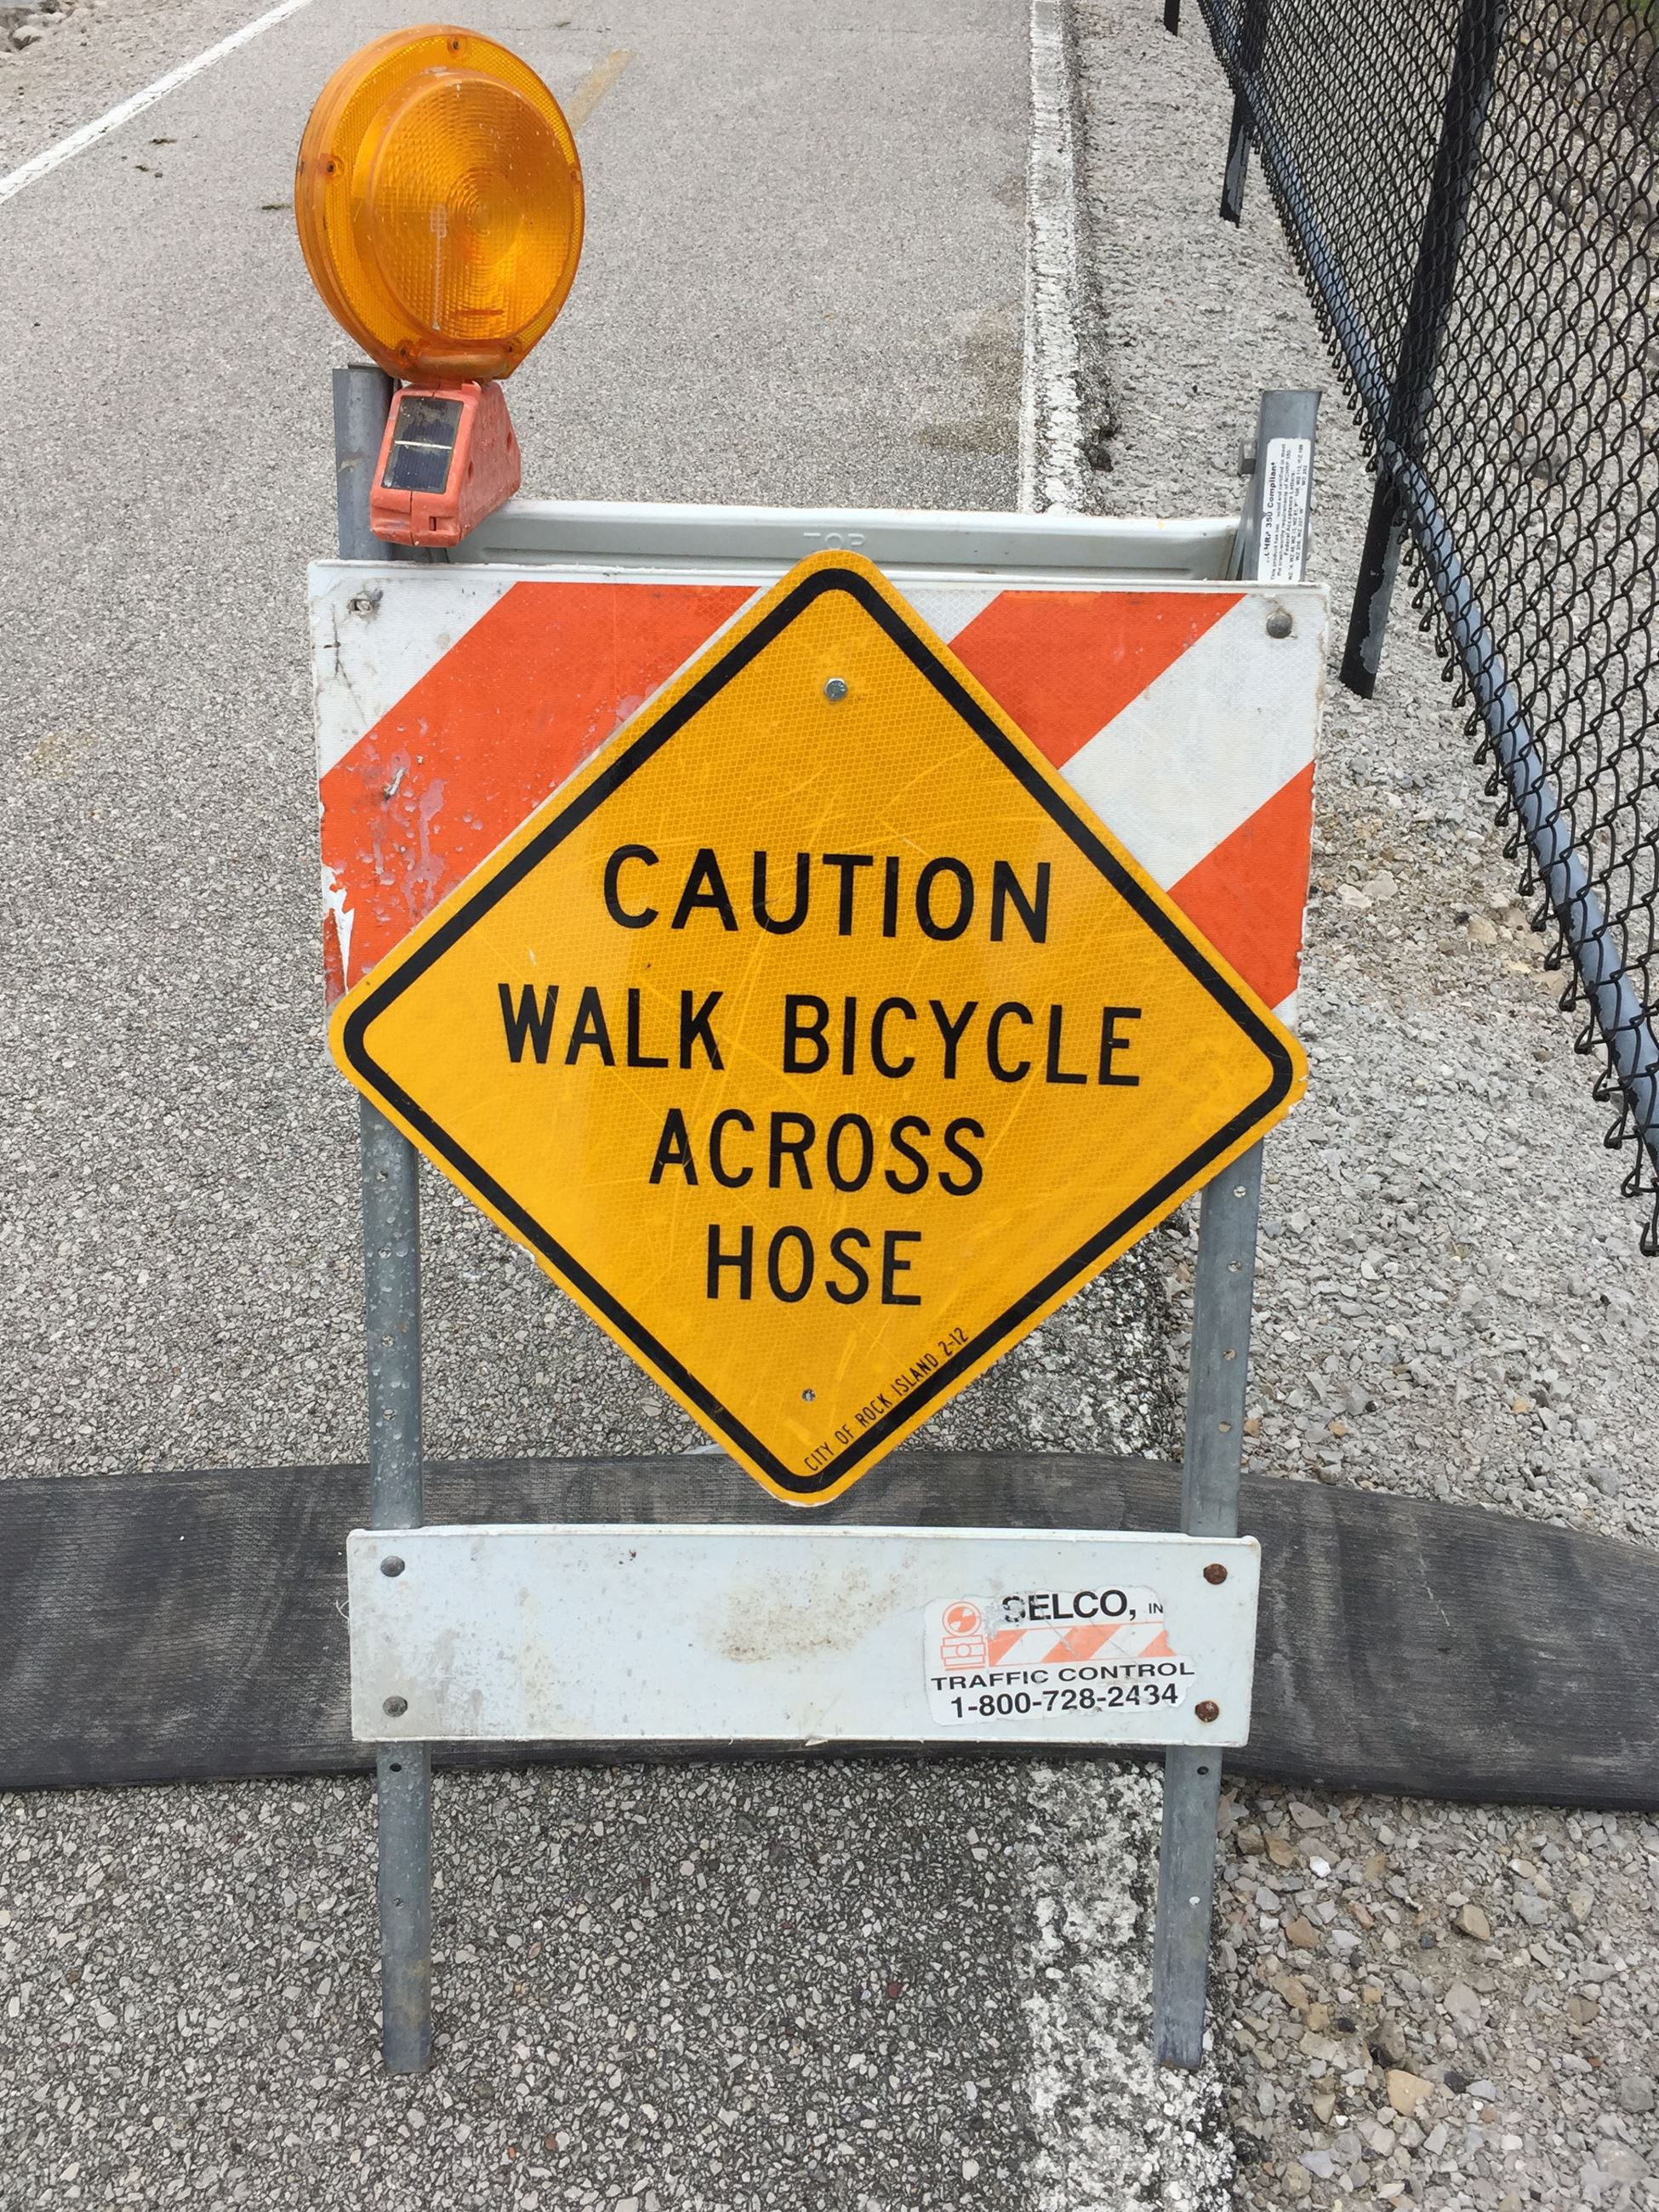 Caution Walk Bicycle Across Hose sign